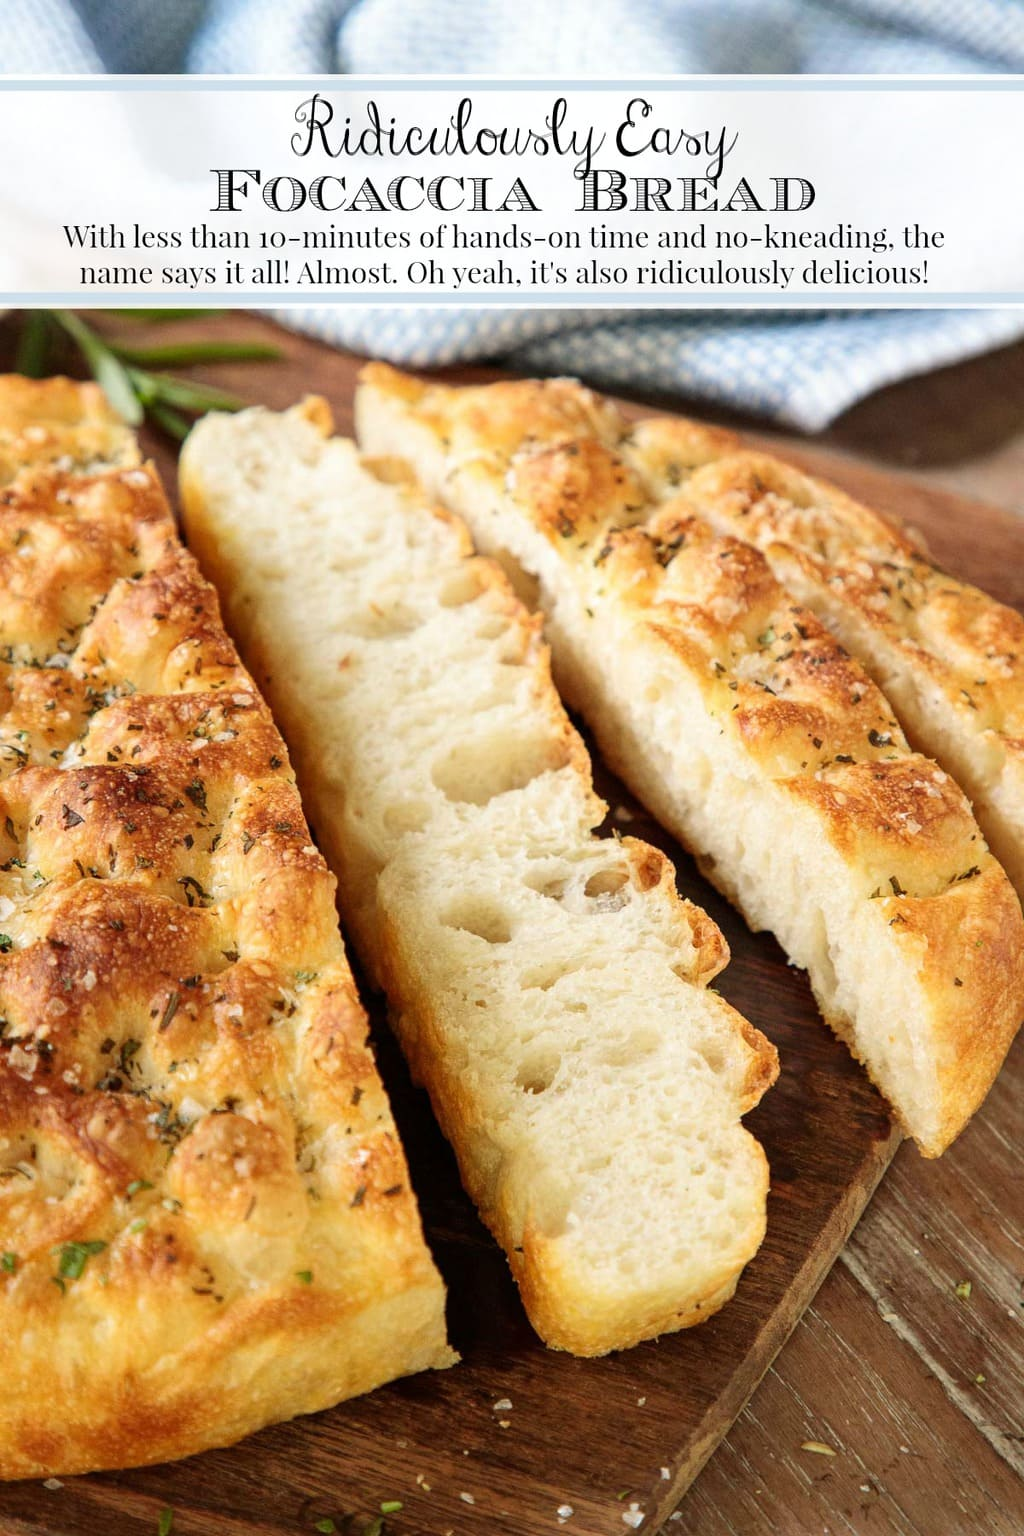 With less than 10-minutes of hands-on time, the name Ridiculously Easy Focaccia Bread says it all! Almost. It\'s also ridiculously delicious! #focaccia, #easyfocaccia, #noknead, #easyrecipe, #italianbread, #easybreakmaking, #nomixer